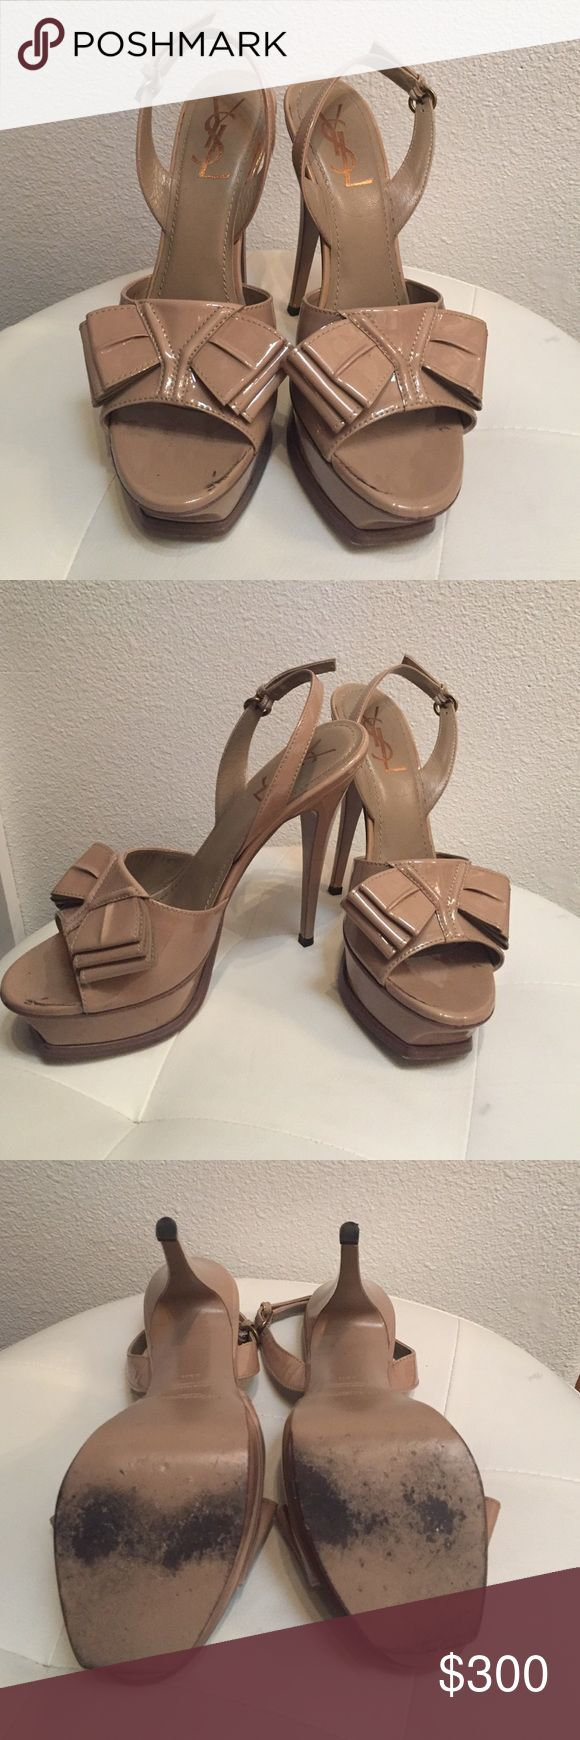 Nude Saint Laurent heels As seen on Kylie Jenner. Gently used, Saint Laurent bow heels. Size 38.5. Comes with Yves Saint Laurent bag Yves Saint Laurent Shoes